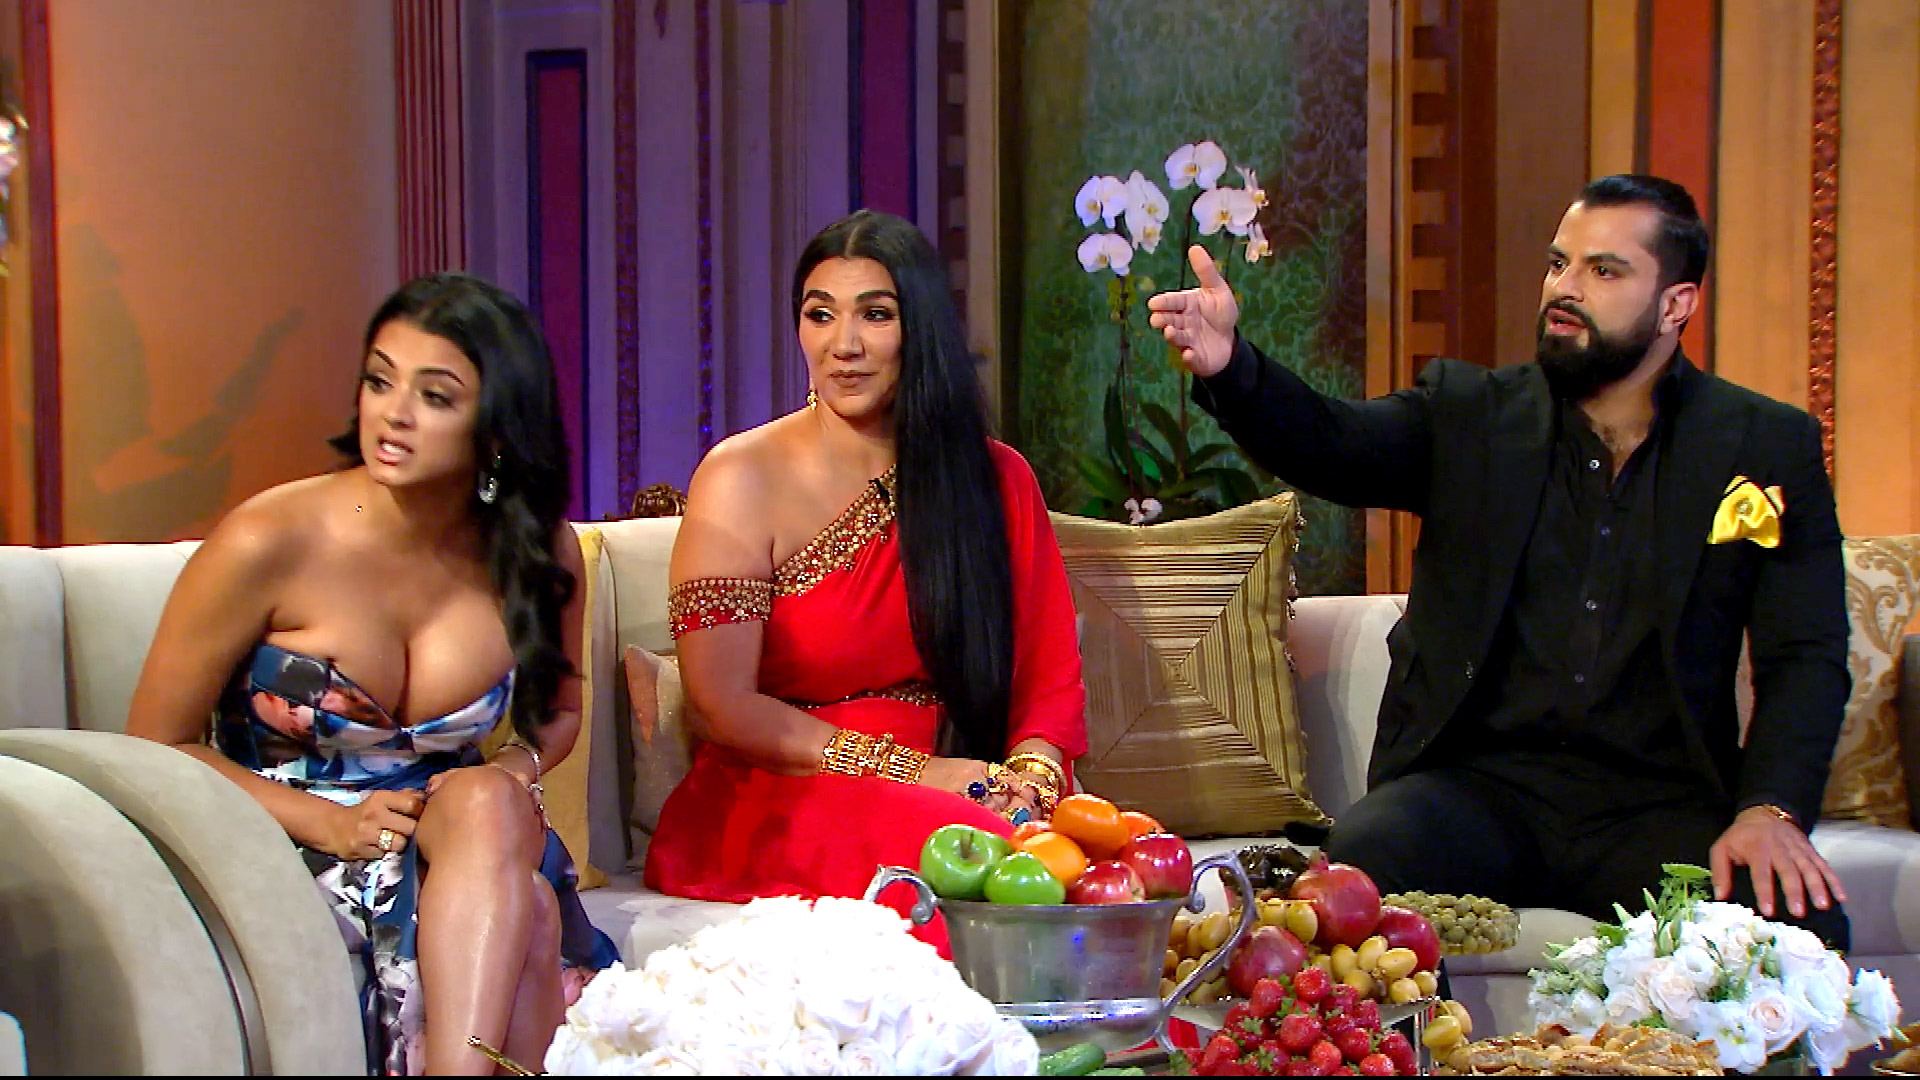 The Shahs Explode Over...Plastic Surgery?!